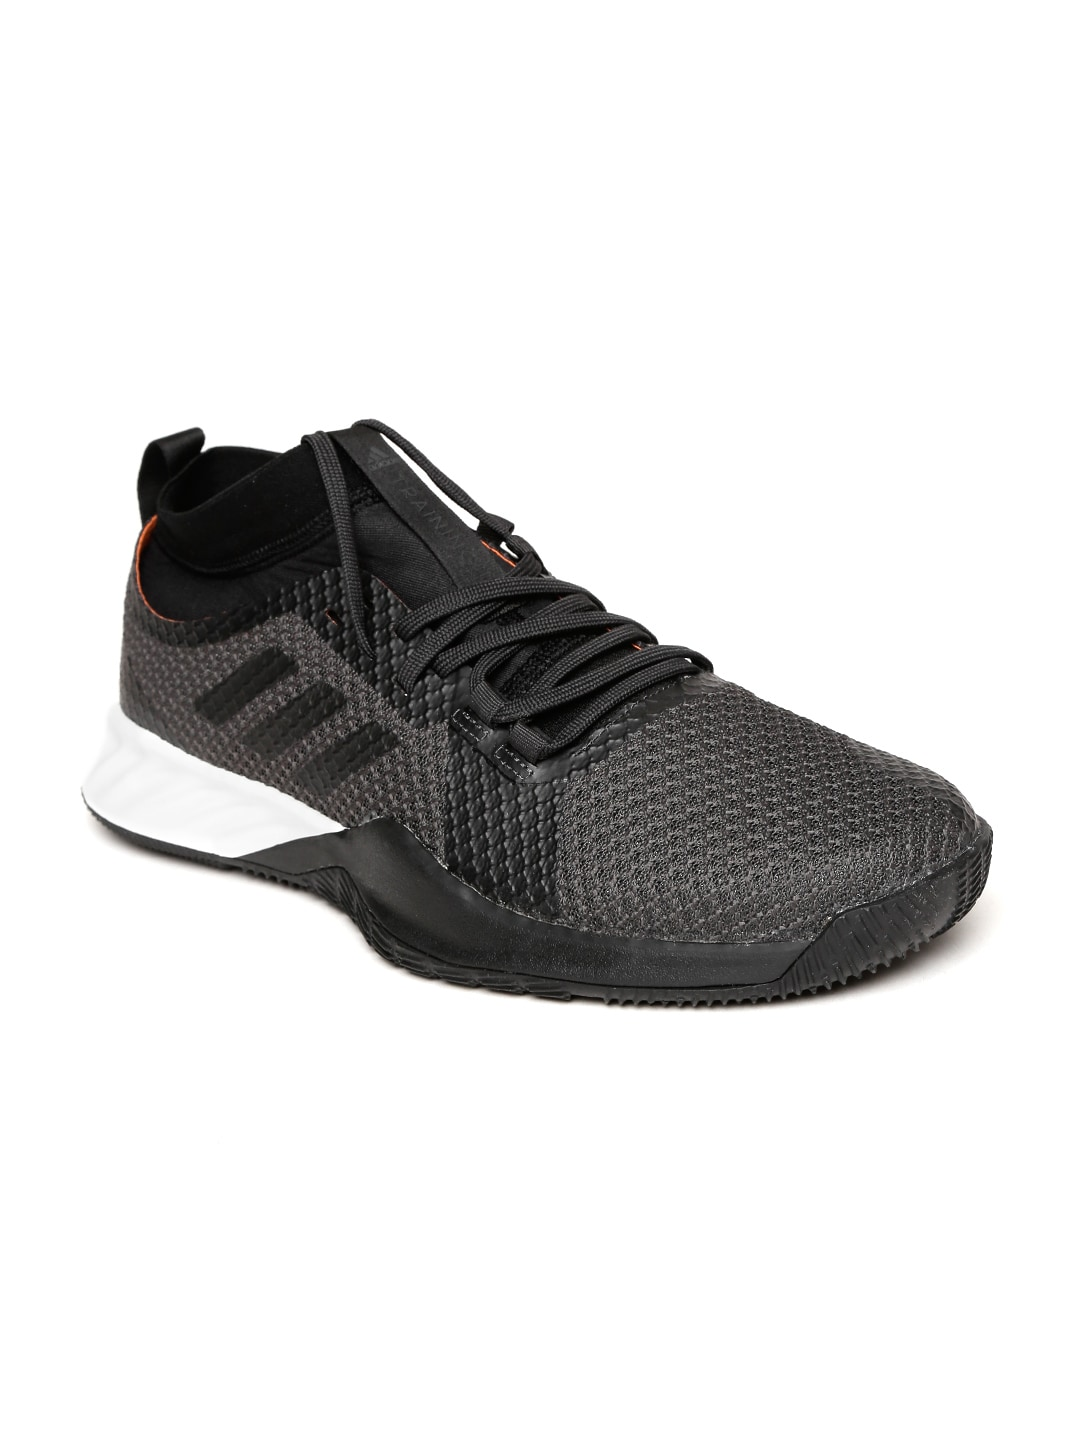 6fcd8b92a5e133 Adidas Training Shoes - Buy Adidas Training Shoes Online in India